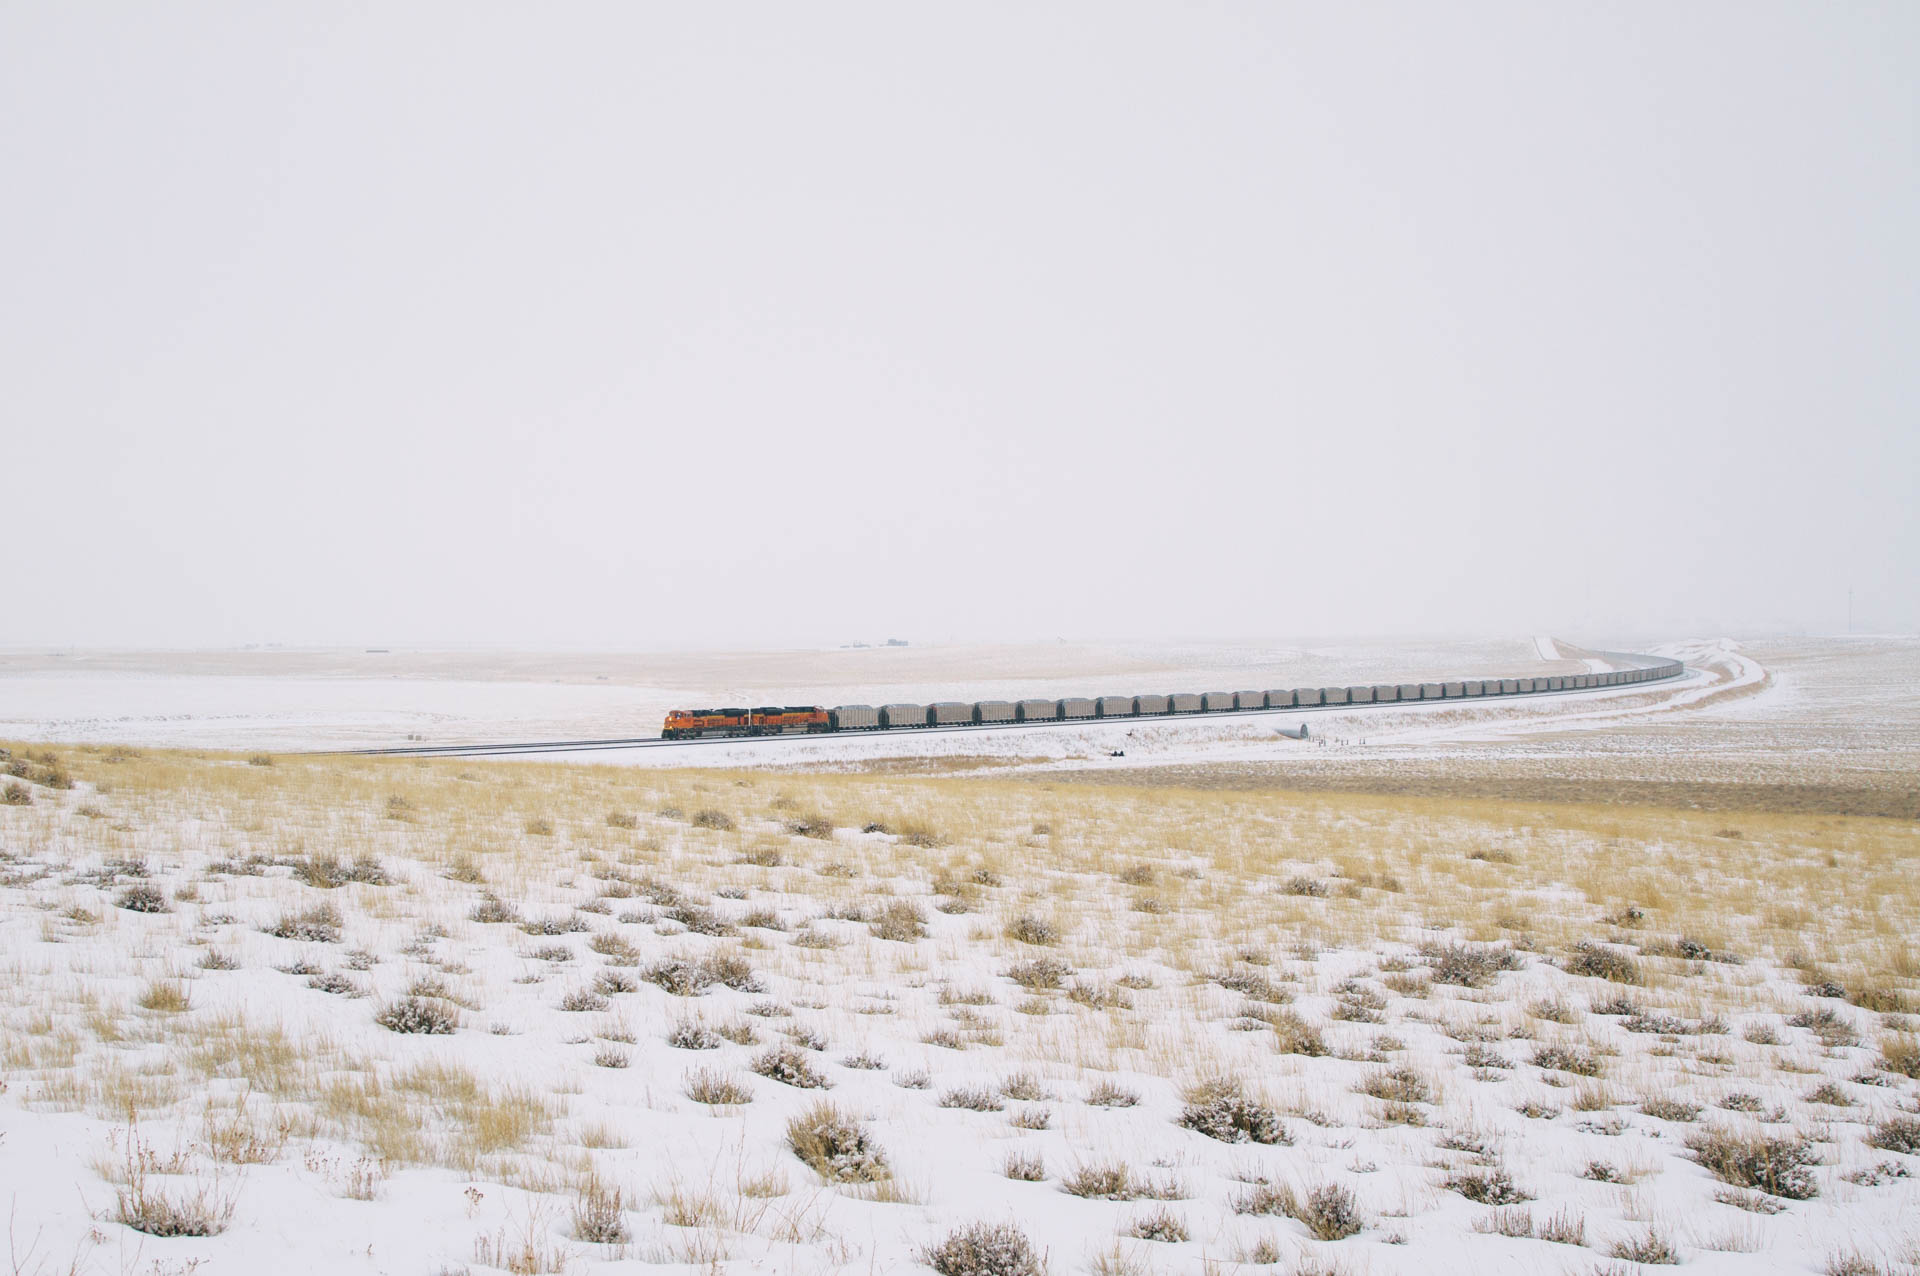 bnsf_prb_winter_wb_wright_wy_8046